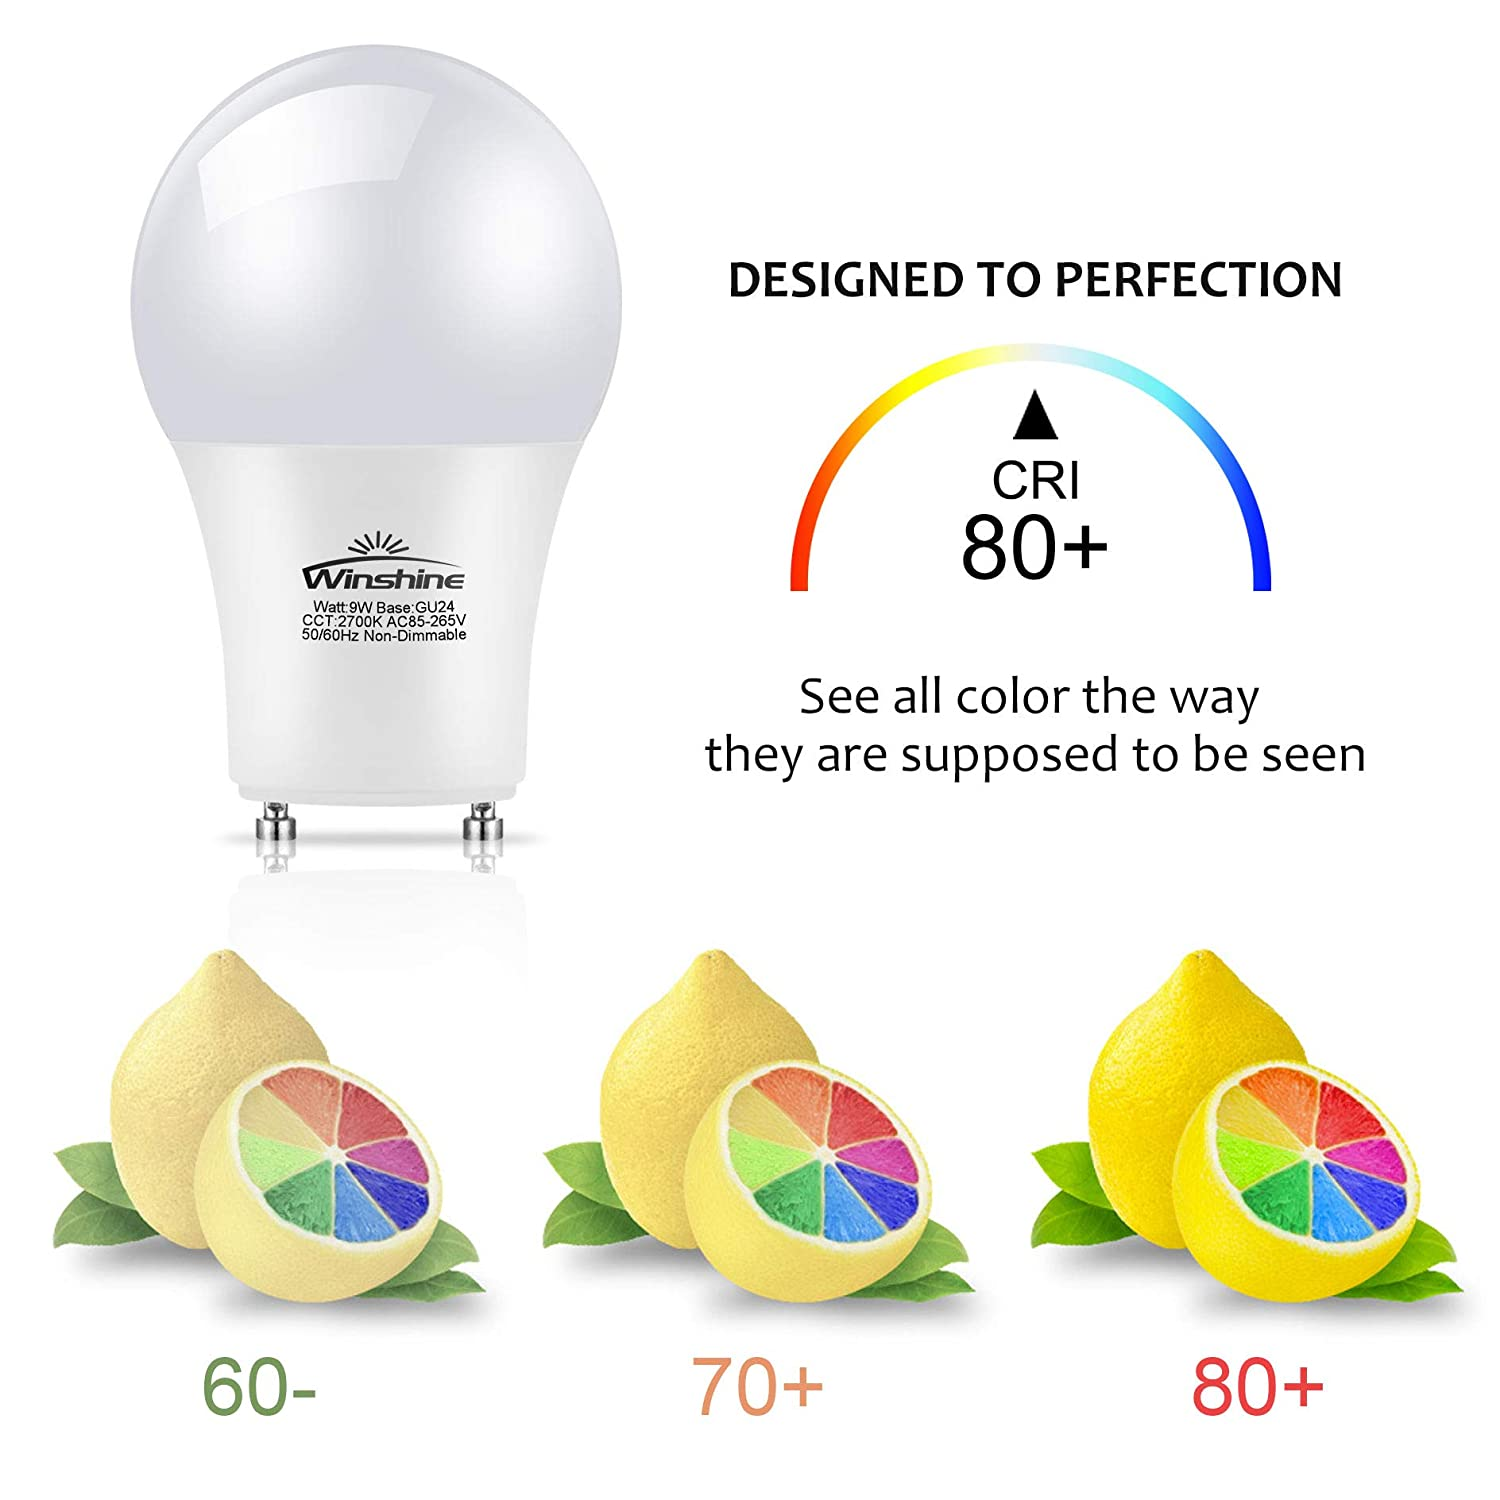 Winshine Dimmable GU24 Light Bulb LED A19 Shape 9W with GU24 Twist-in Base 60w Equivalent 900lm Pack of 6 2700K